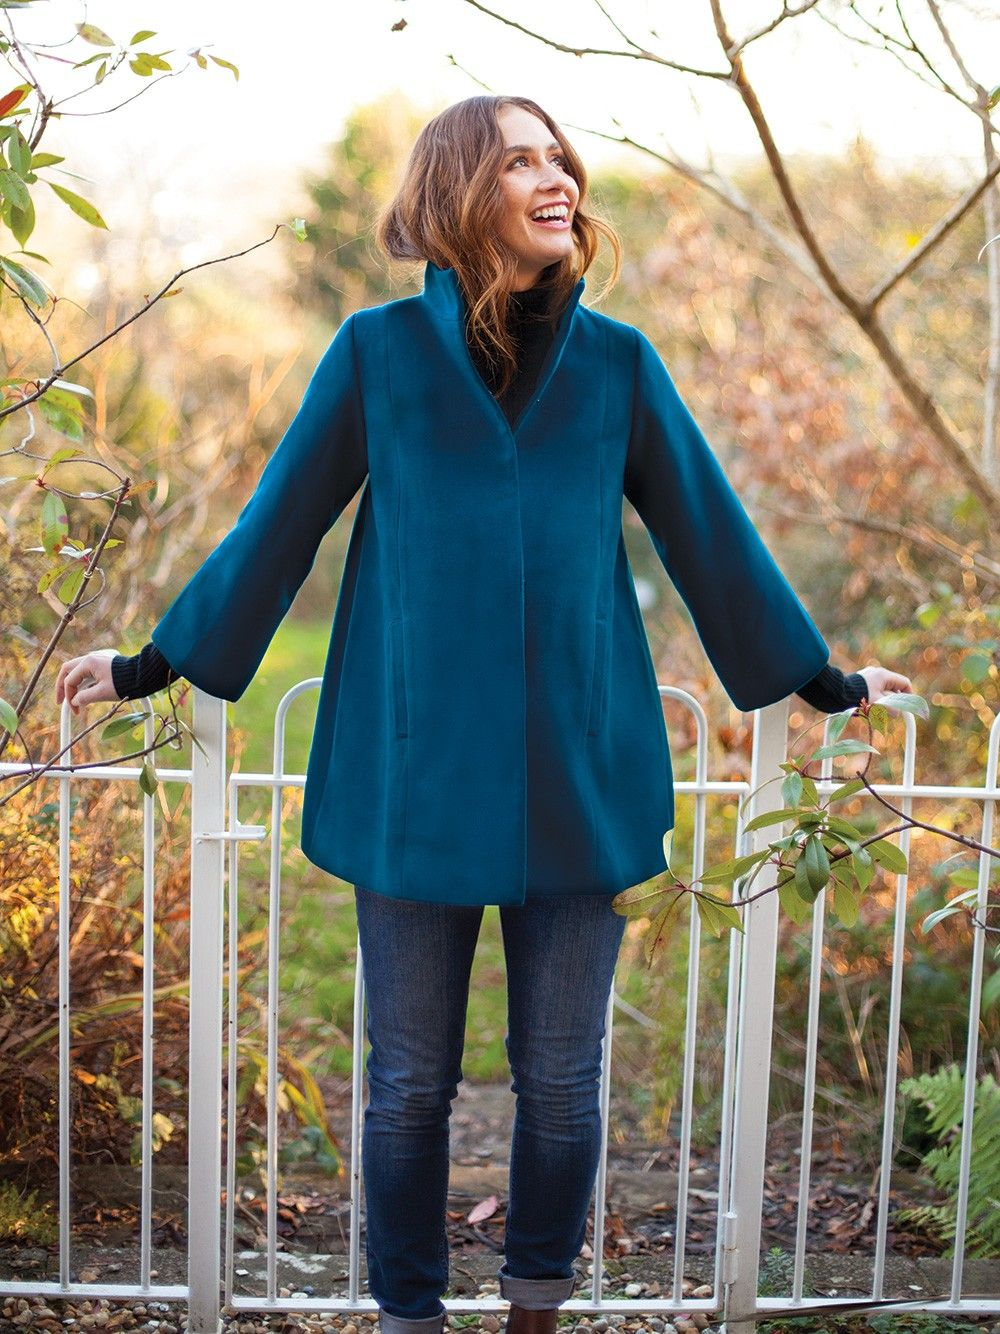 b41ea5563a8a8 Teal Maternity Swing Coat | JoJo Maman Bebe | Shopping - Fall ...